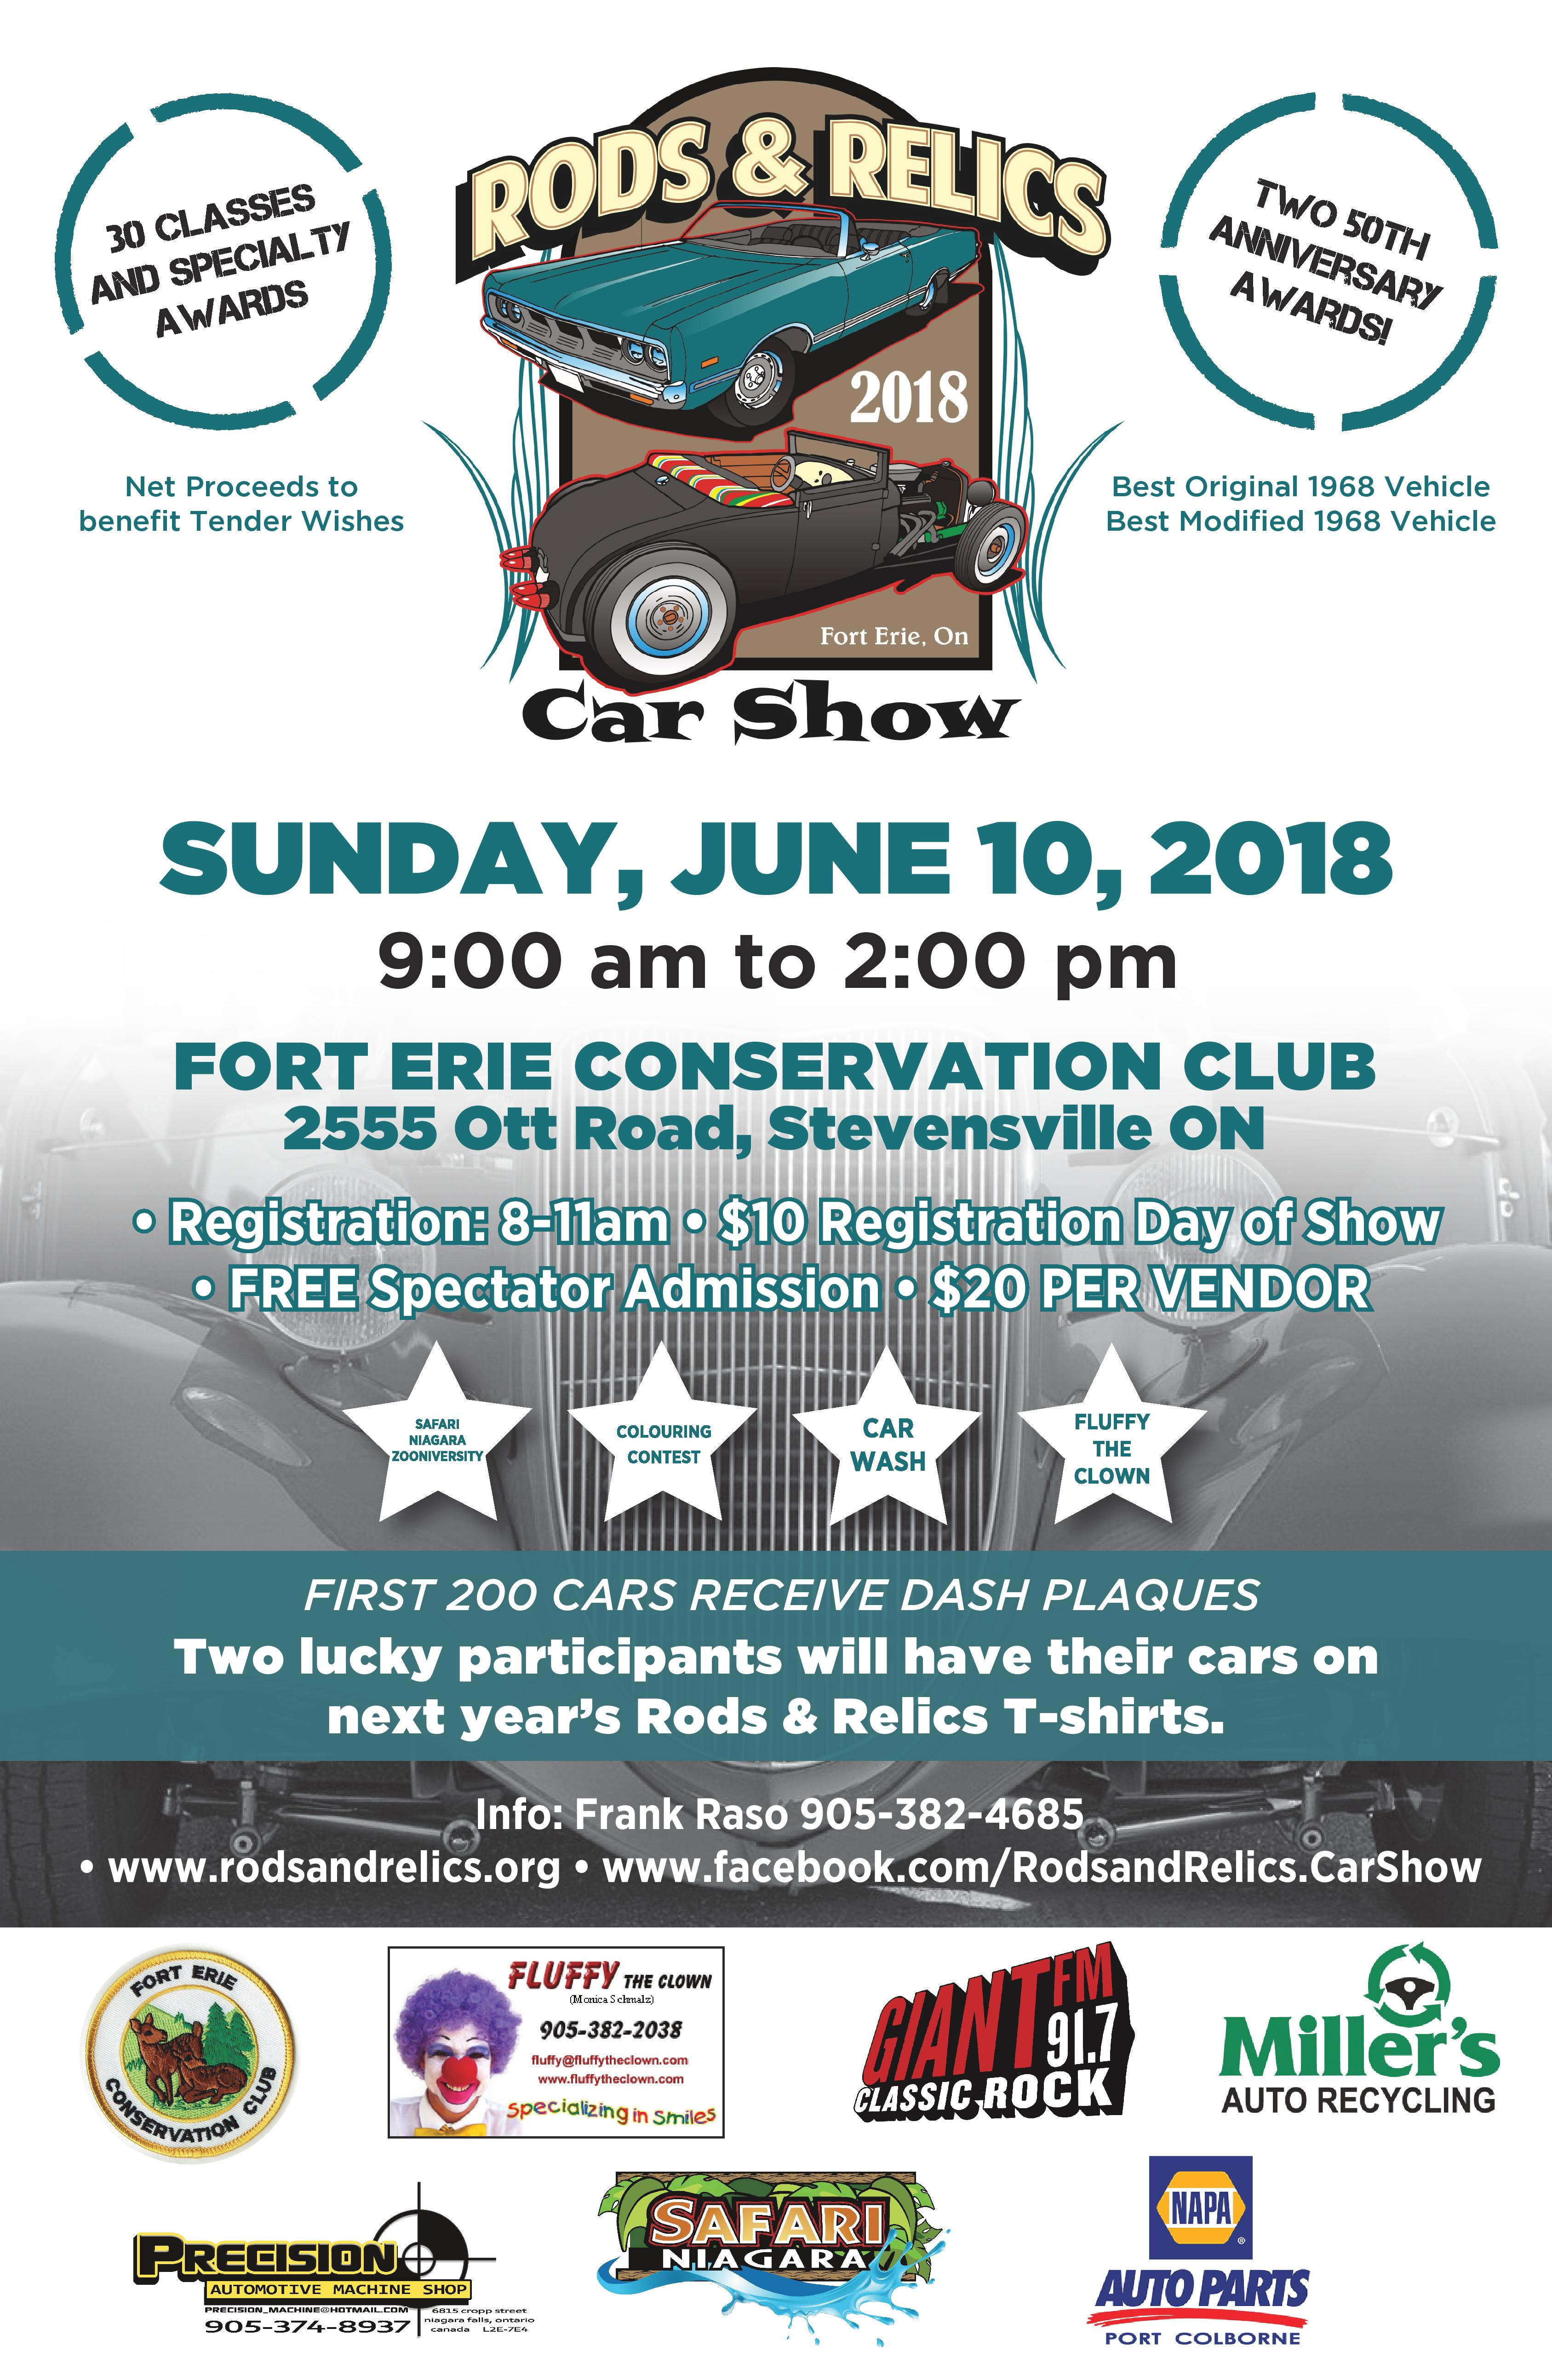 Rods & Relics Car Show Poster